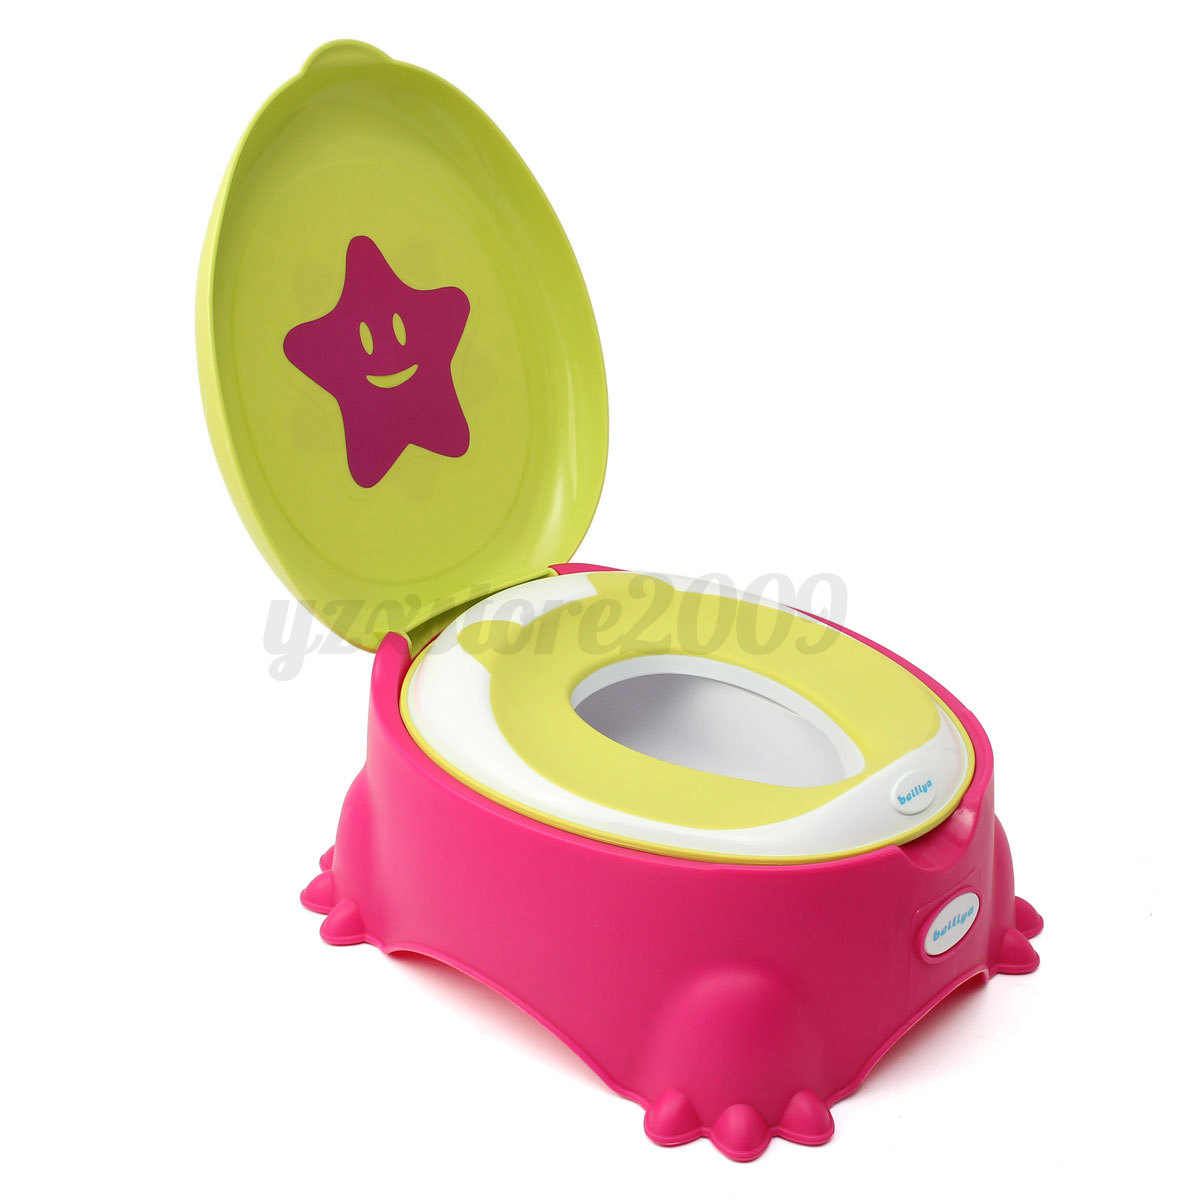 Kinder Wc Sitz Kidskit Toilettentrainer Kinder Baby Wc Sitz Toilettensitz